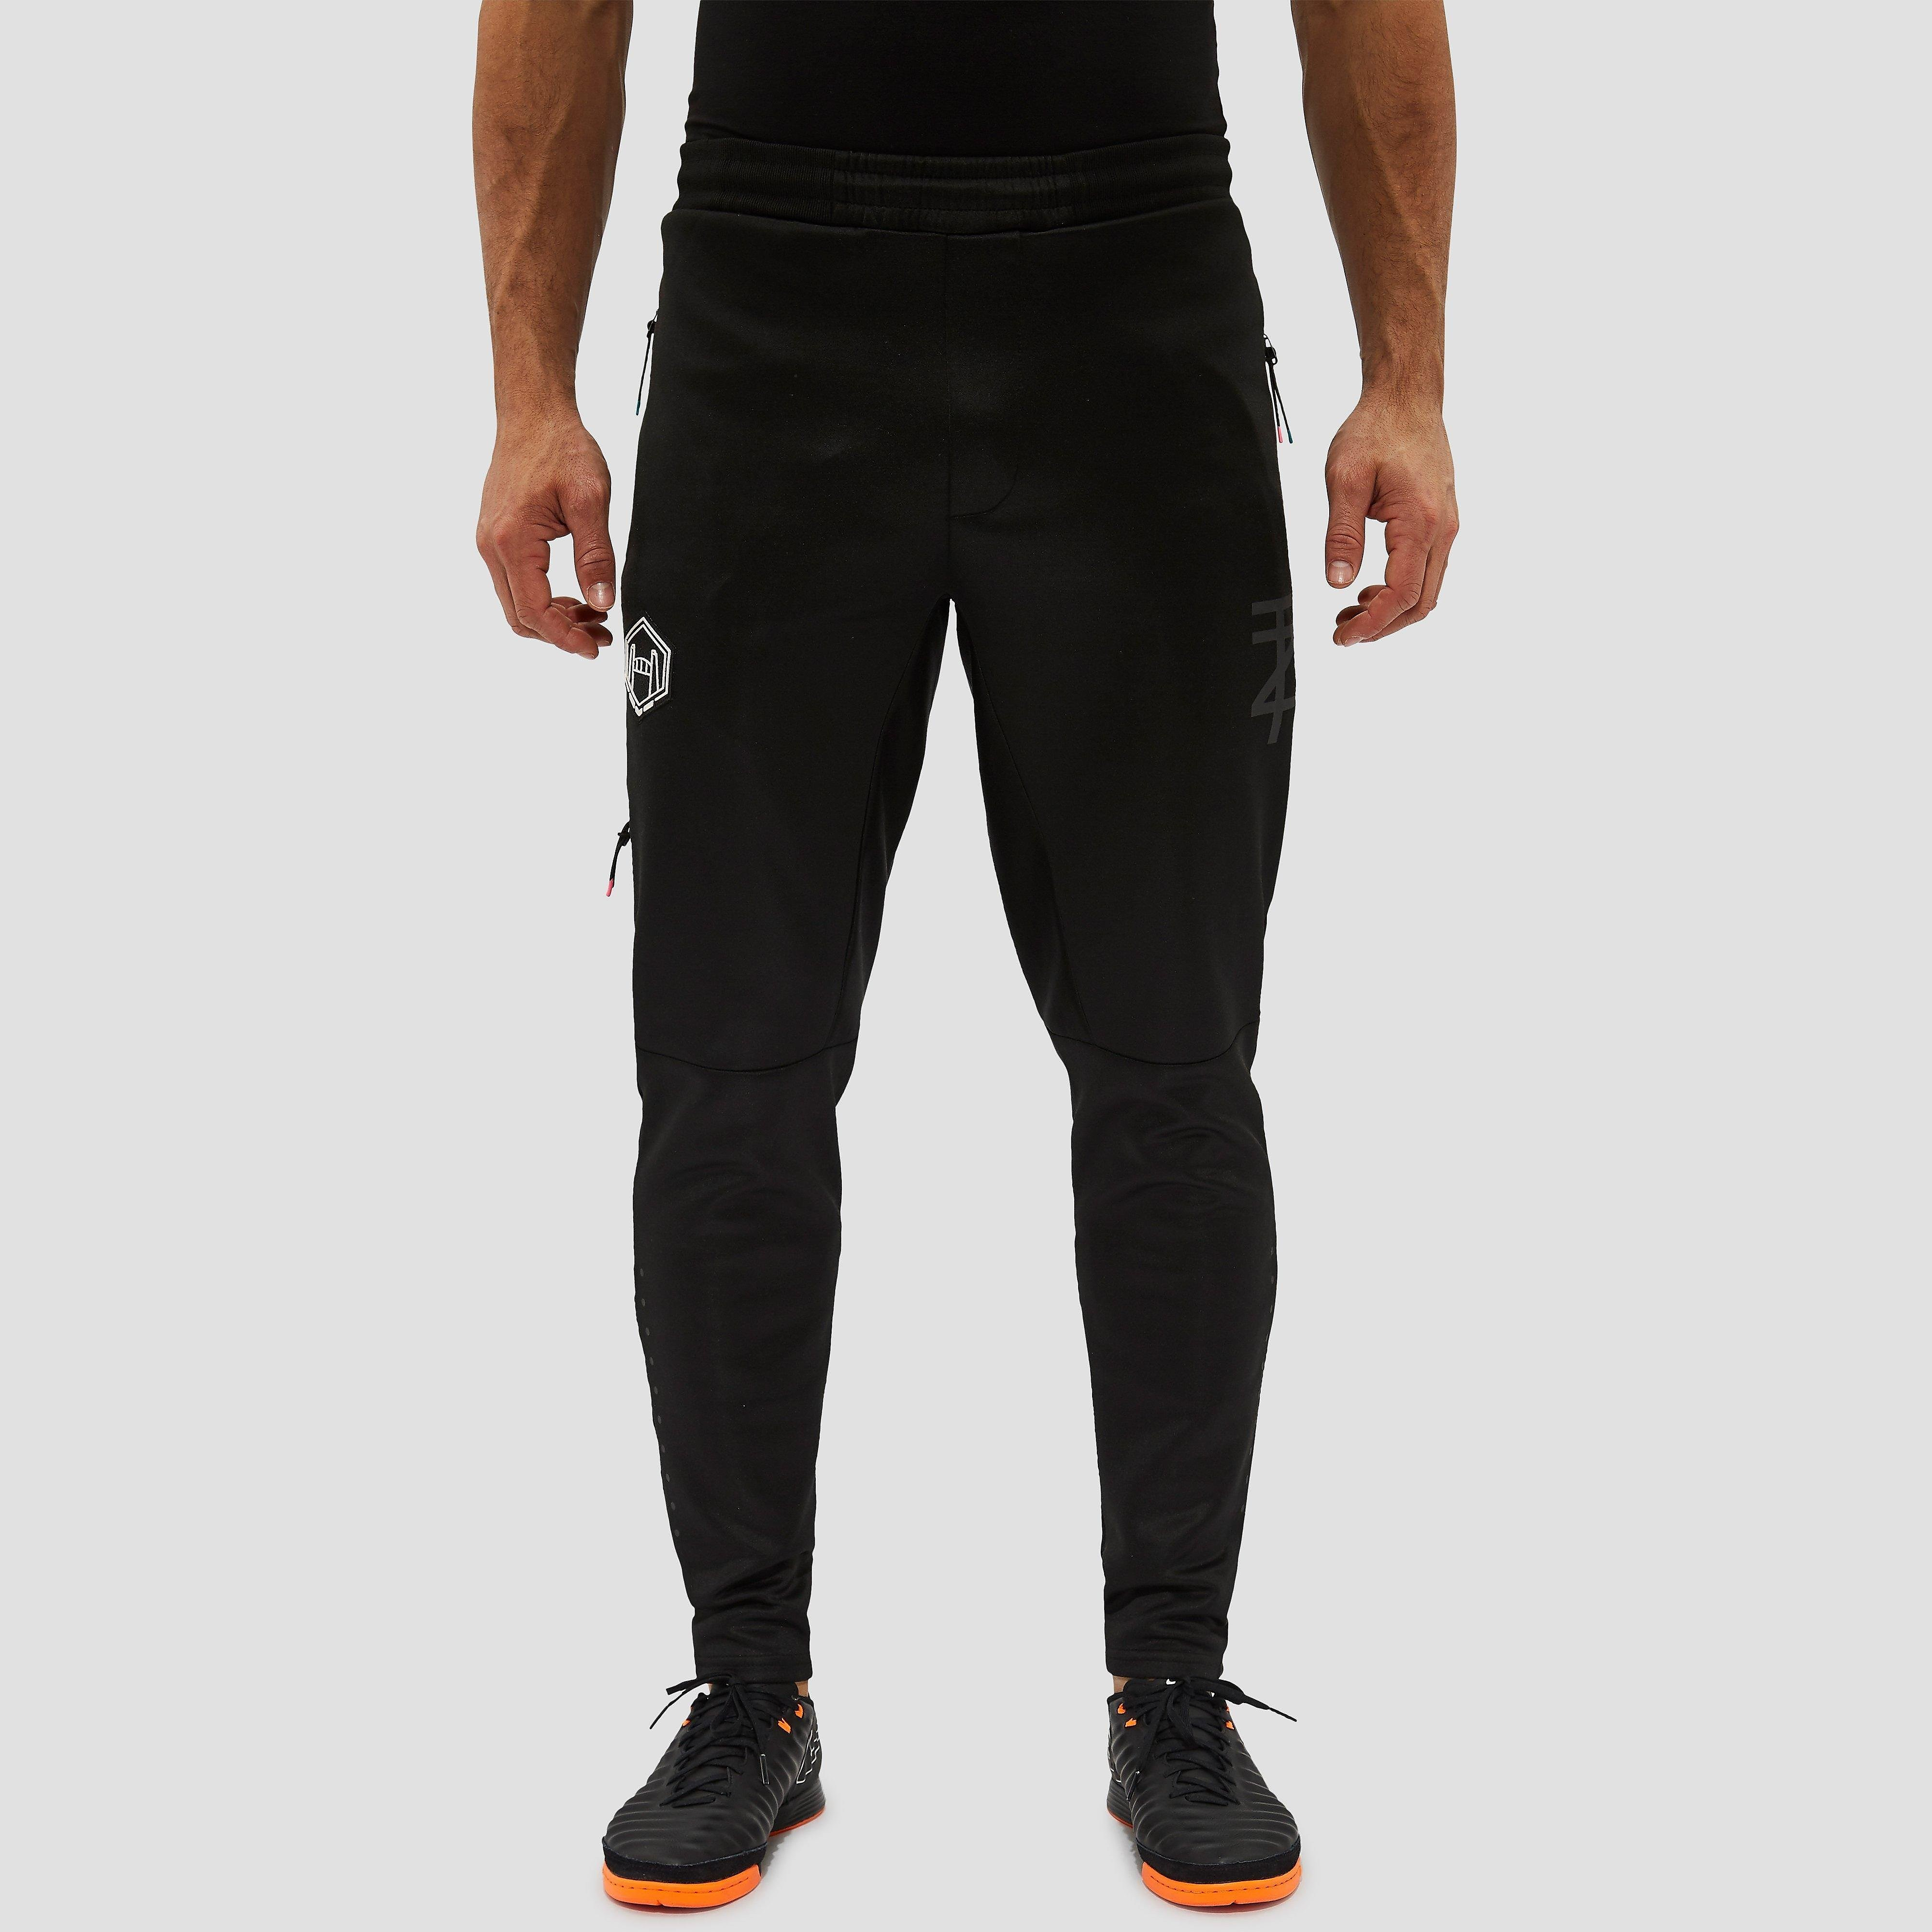 TOUZANI PRO-FLOW SLICK BOTTOM TRAININGSBROEK ZWART HEREN